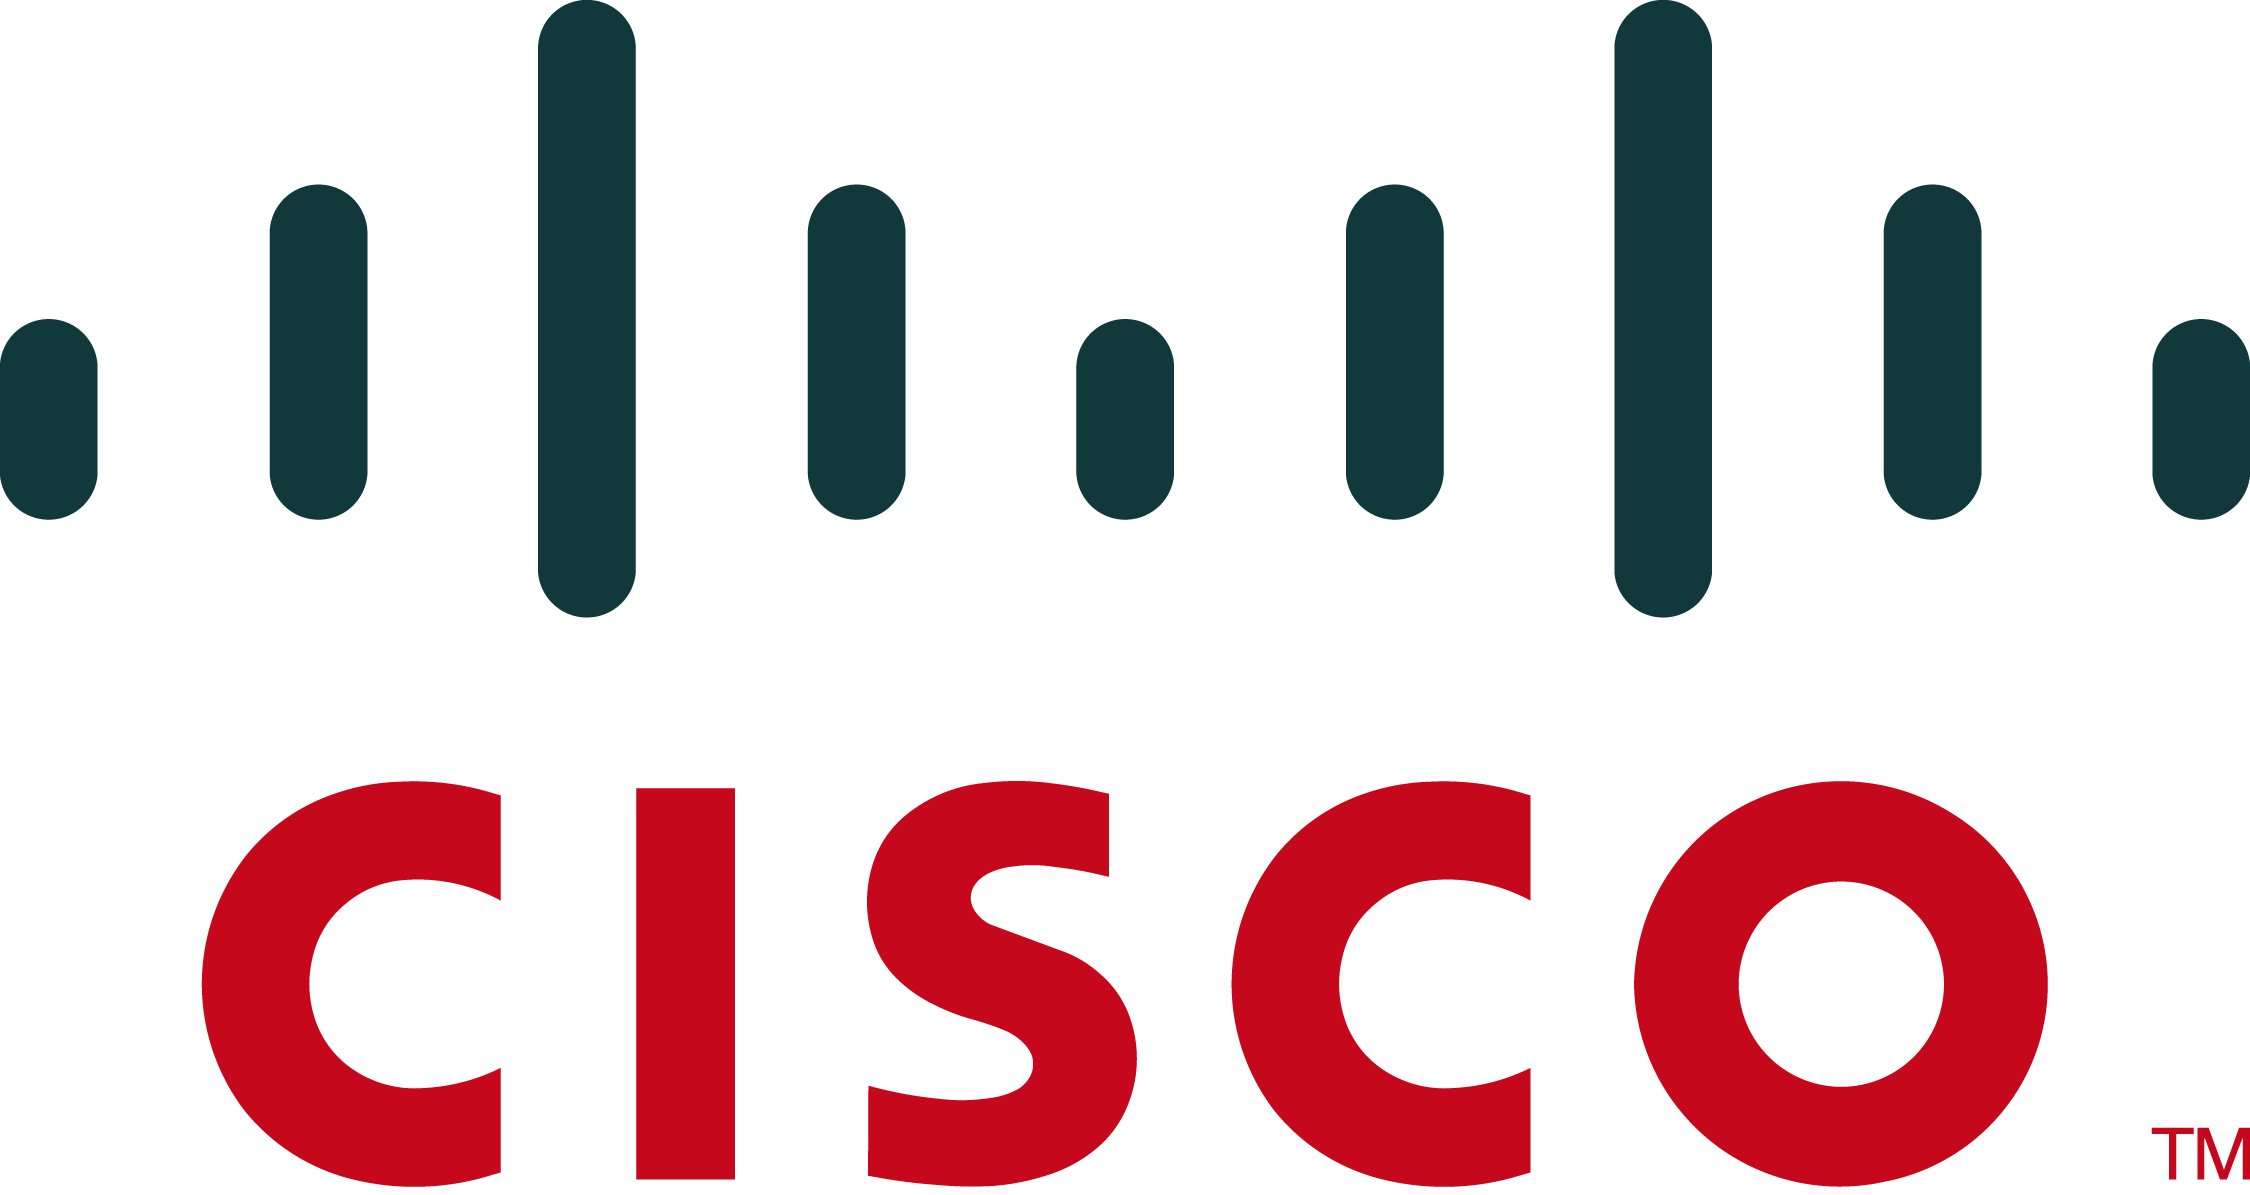 a description of cisco systems as a multinational company with many outlets around the world